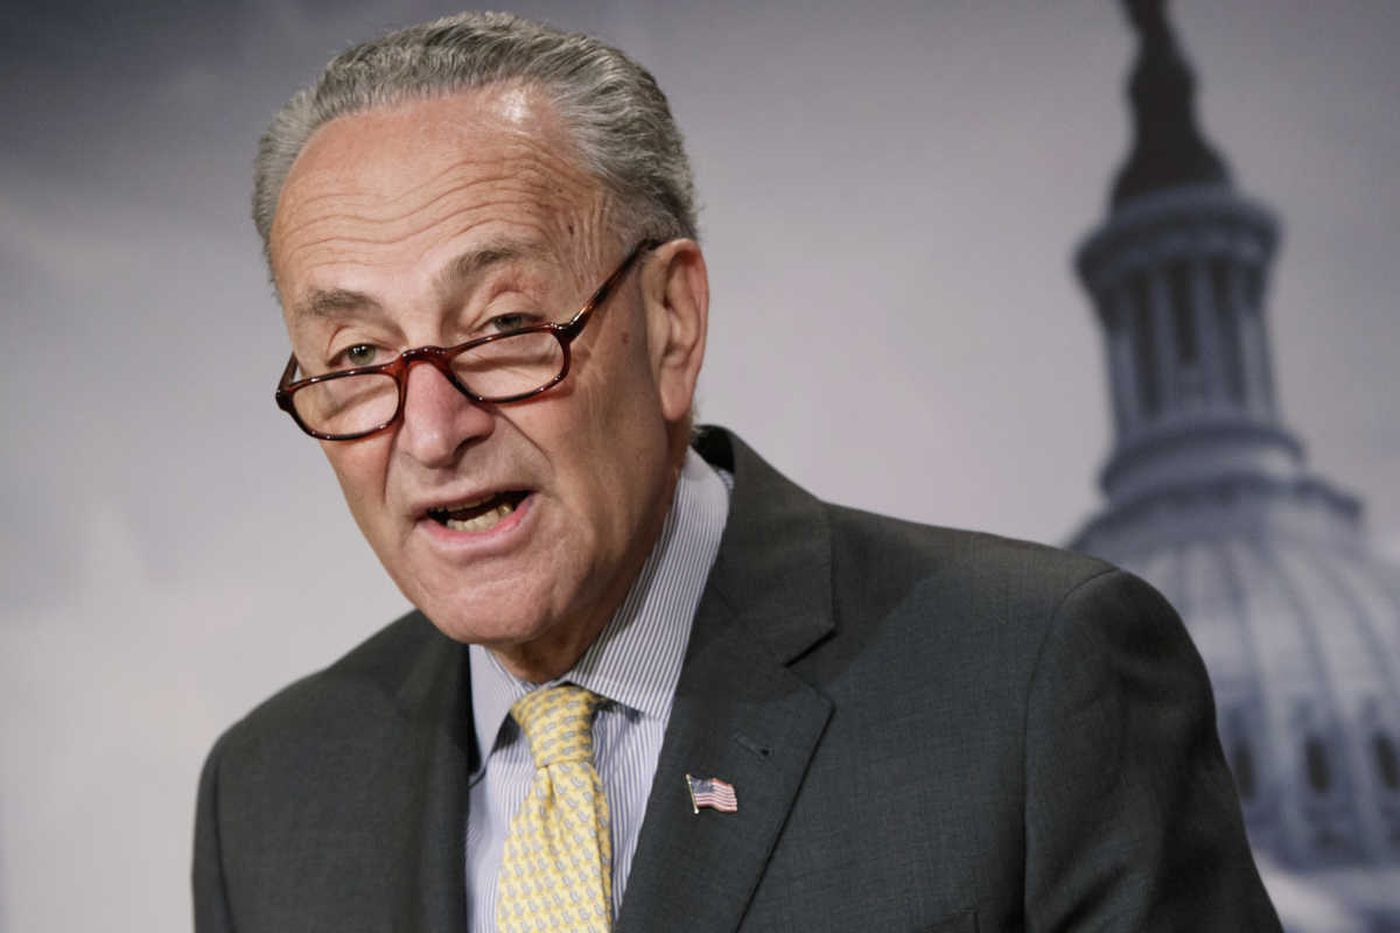 Commentary: Schumer's resistance a gift to conservatives